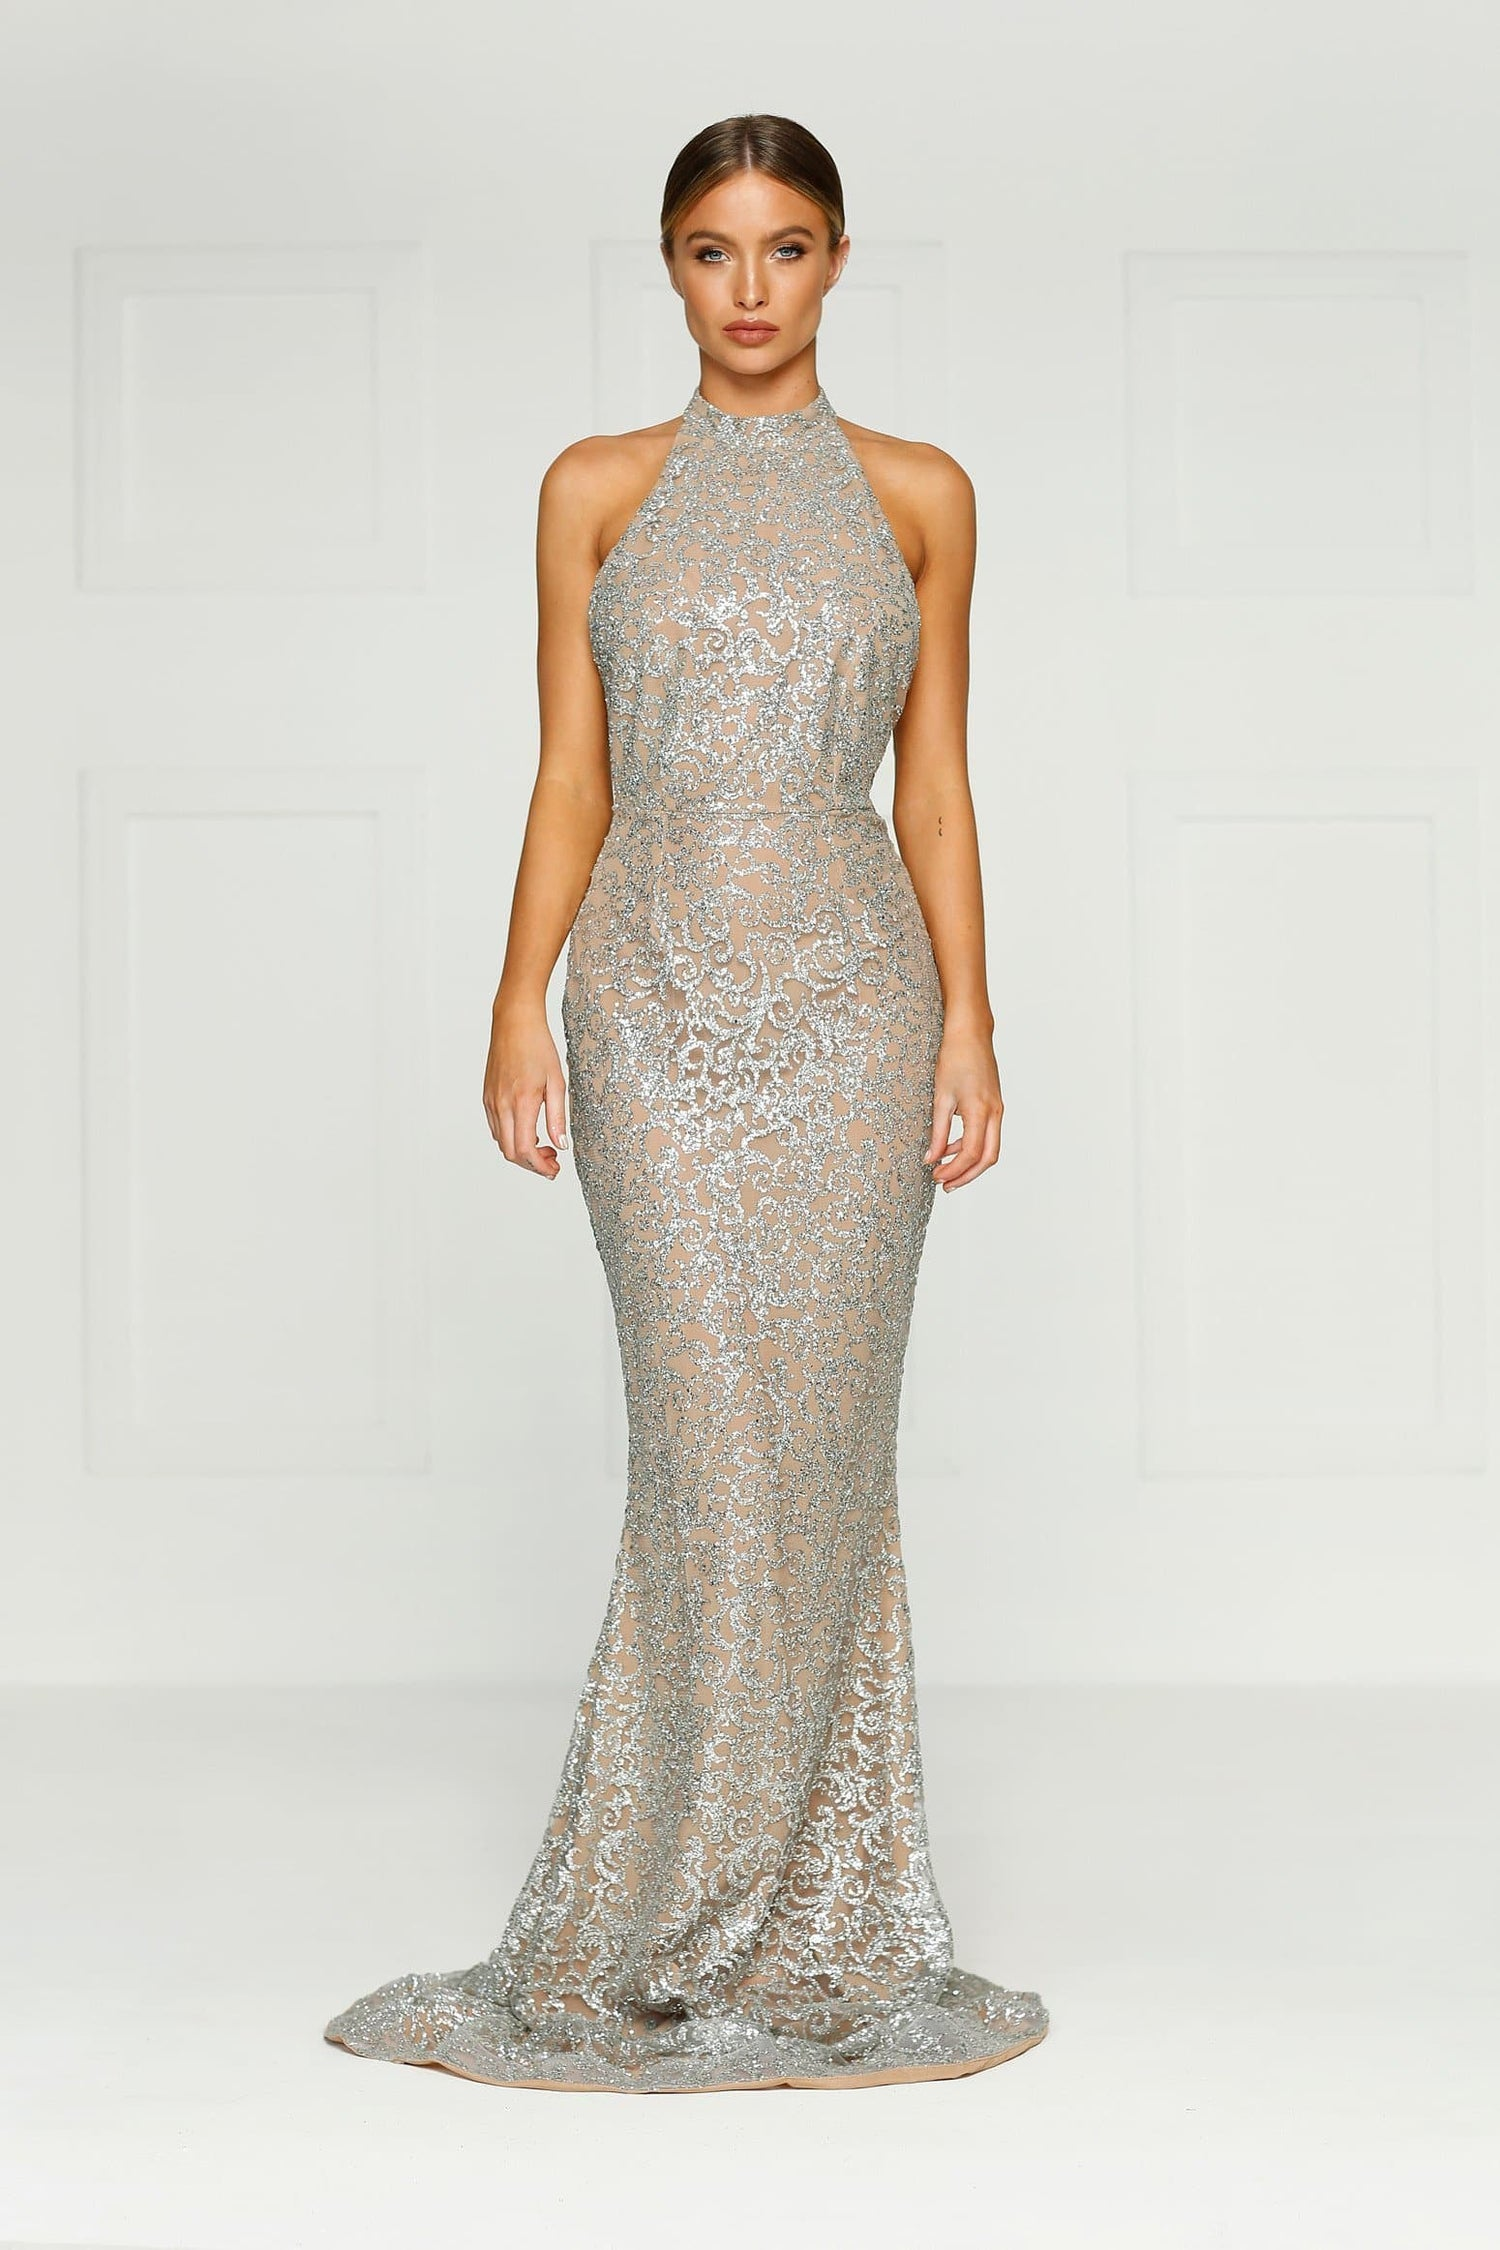 Leilani - Silver Glitter Gown with Halter Neckline & Open Back